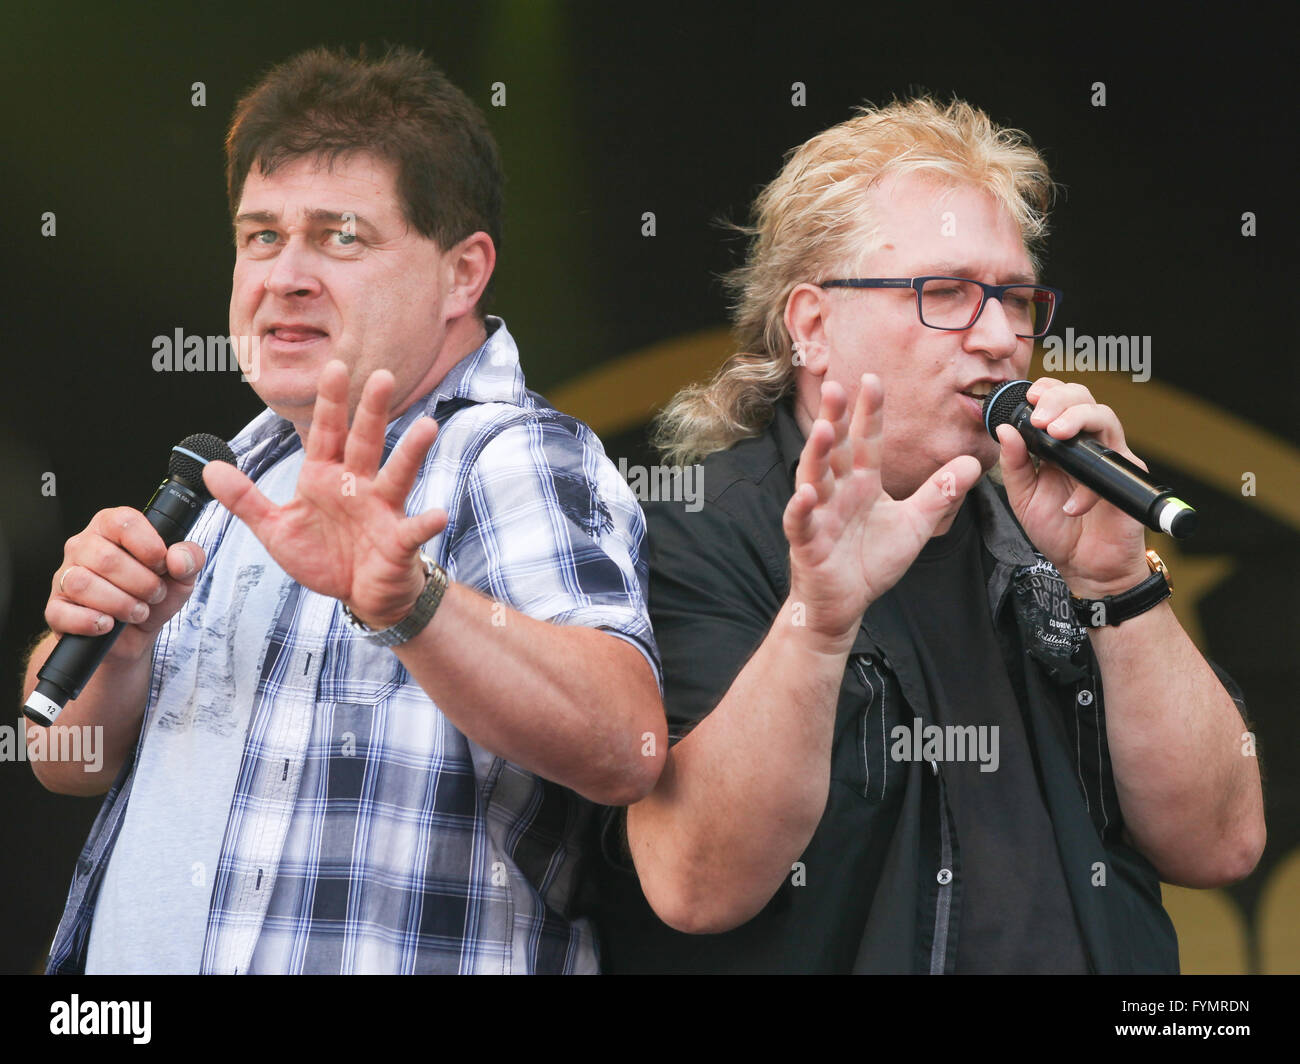 Duo Olaf&Hans - Stock Image